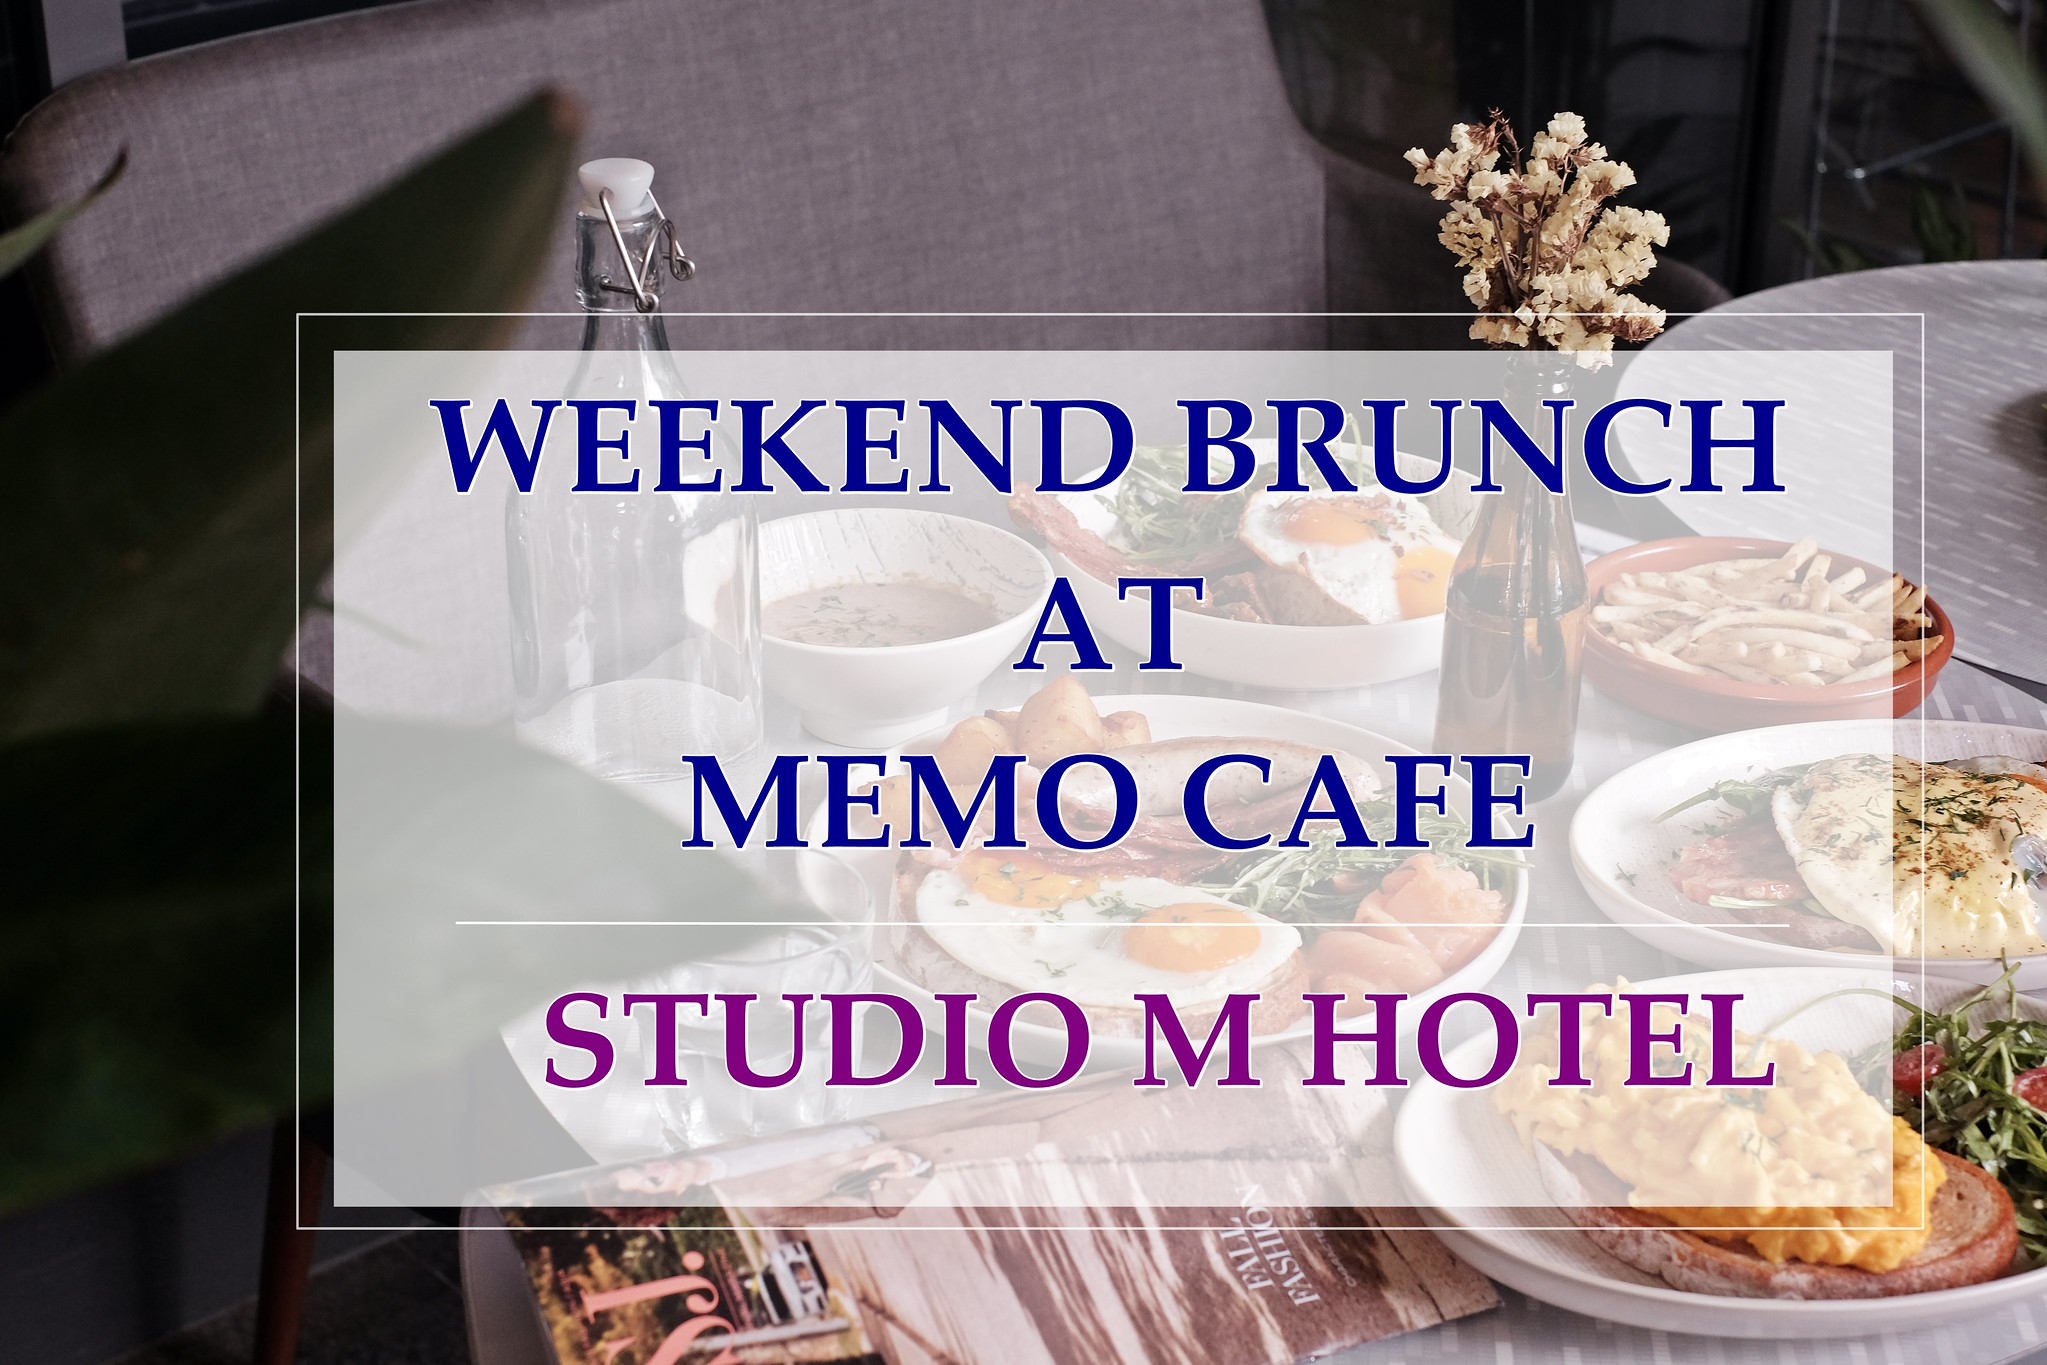 [SG EATS] Weekend All Day Brunch At Memo Café | Studio M Hotel Singapore – All Under S$25.00 NETT